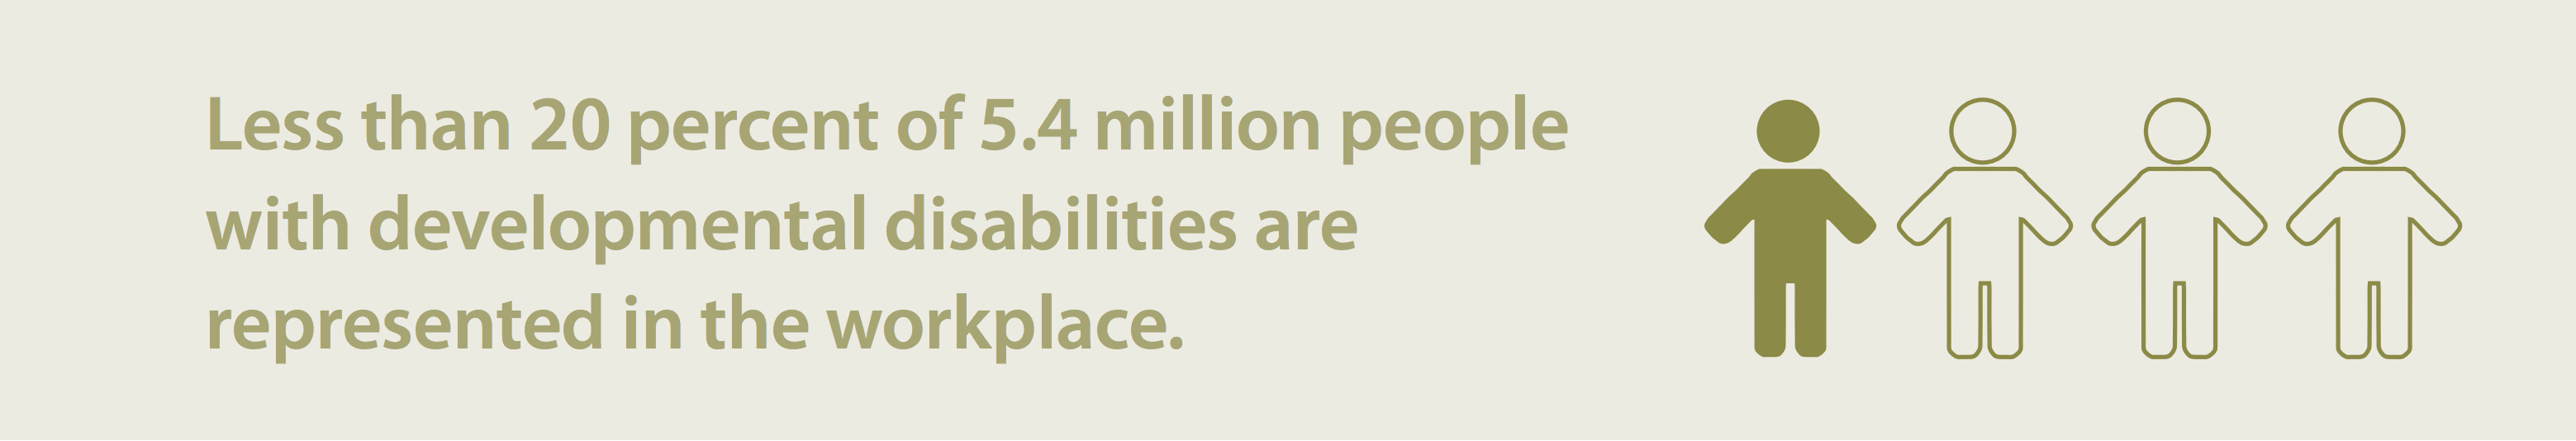 Less than 20 perfect of 5.4 million people with developmental disabilities are represented in the workplace.